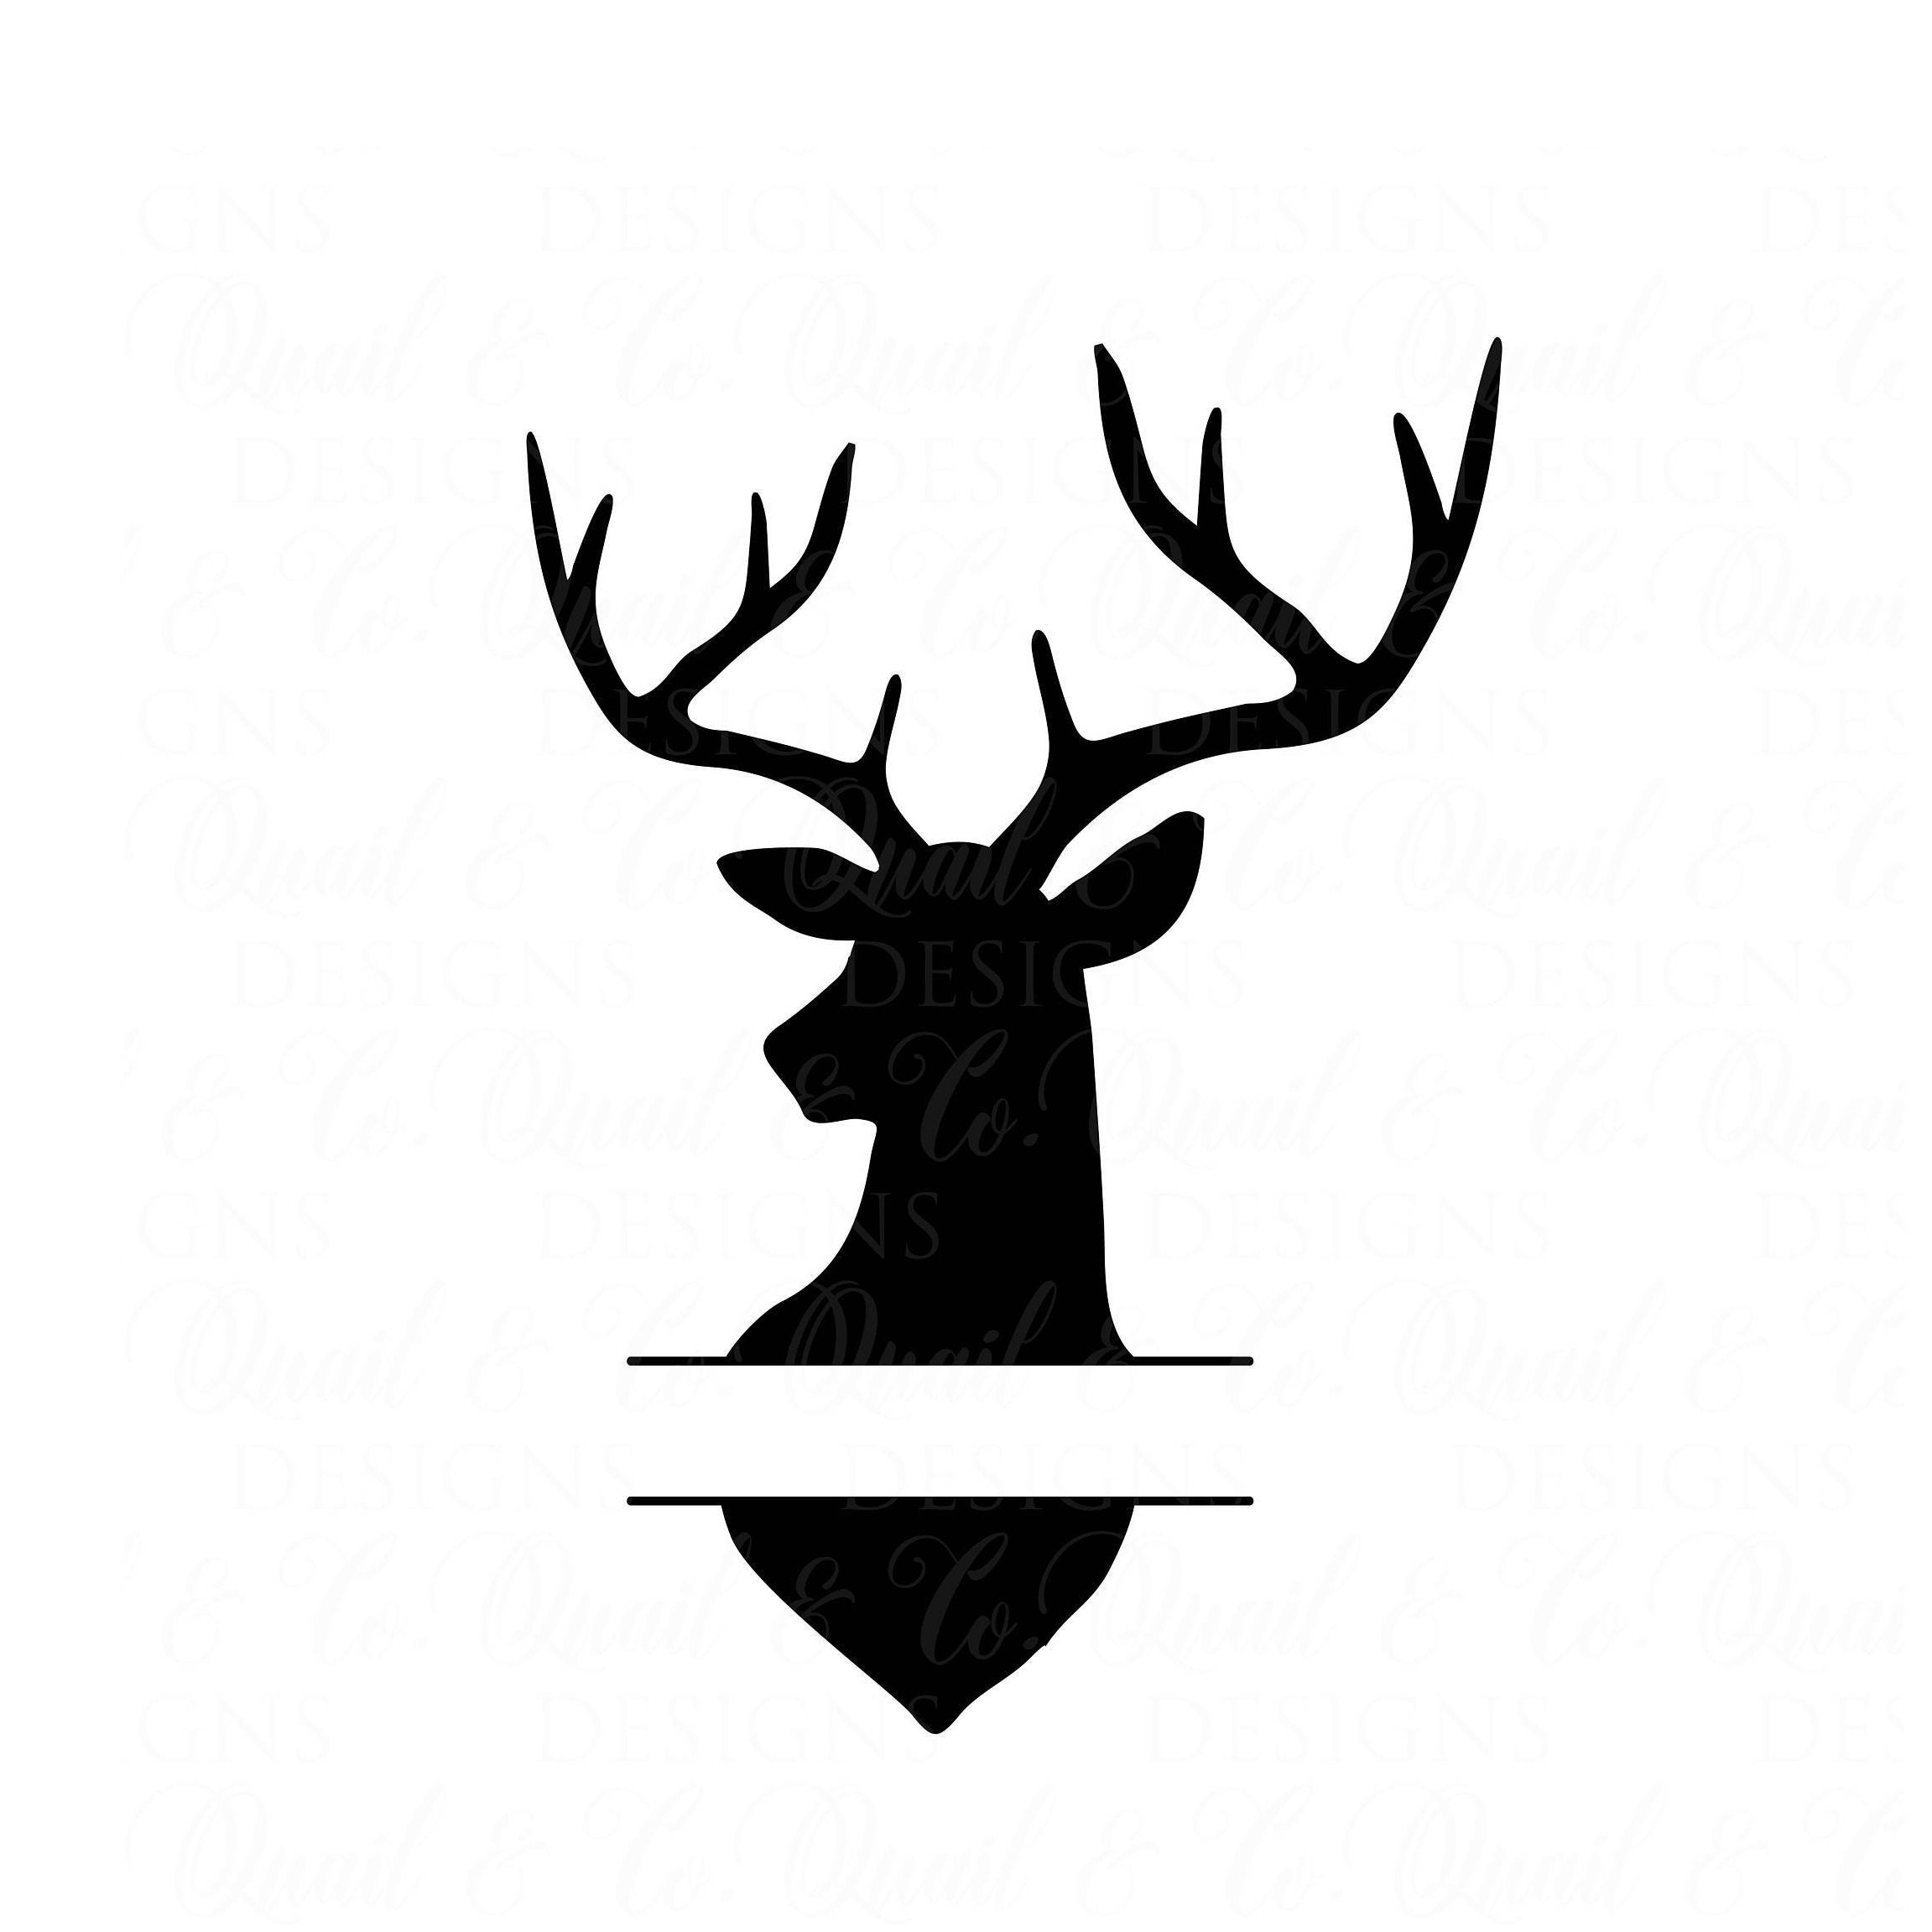 Download Free Svg Silhouette Of A Deer In The Midnight File For ...